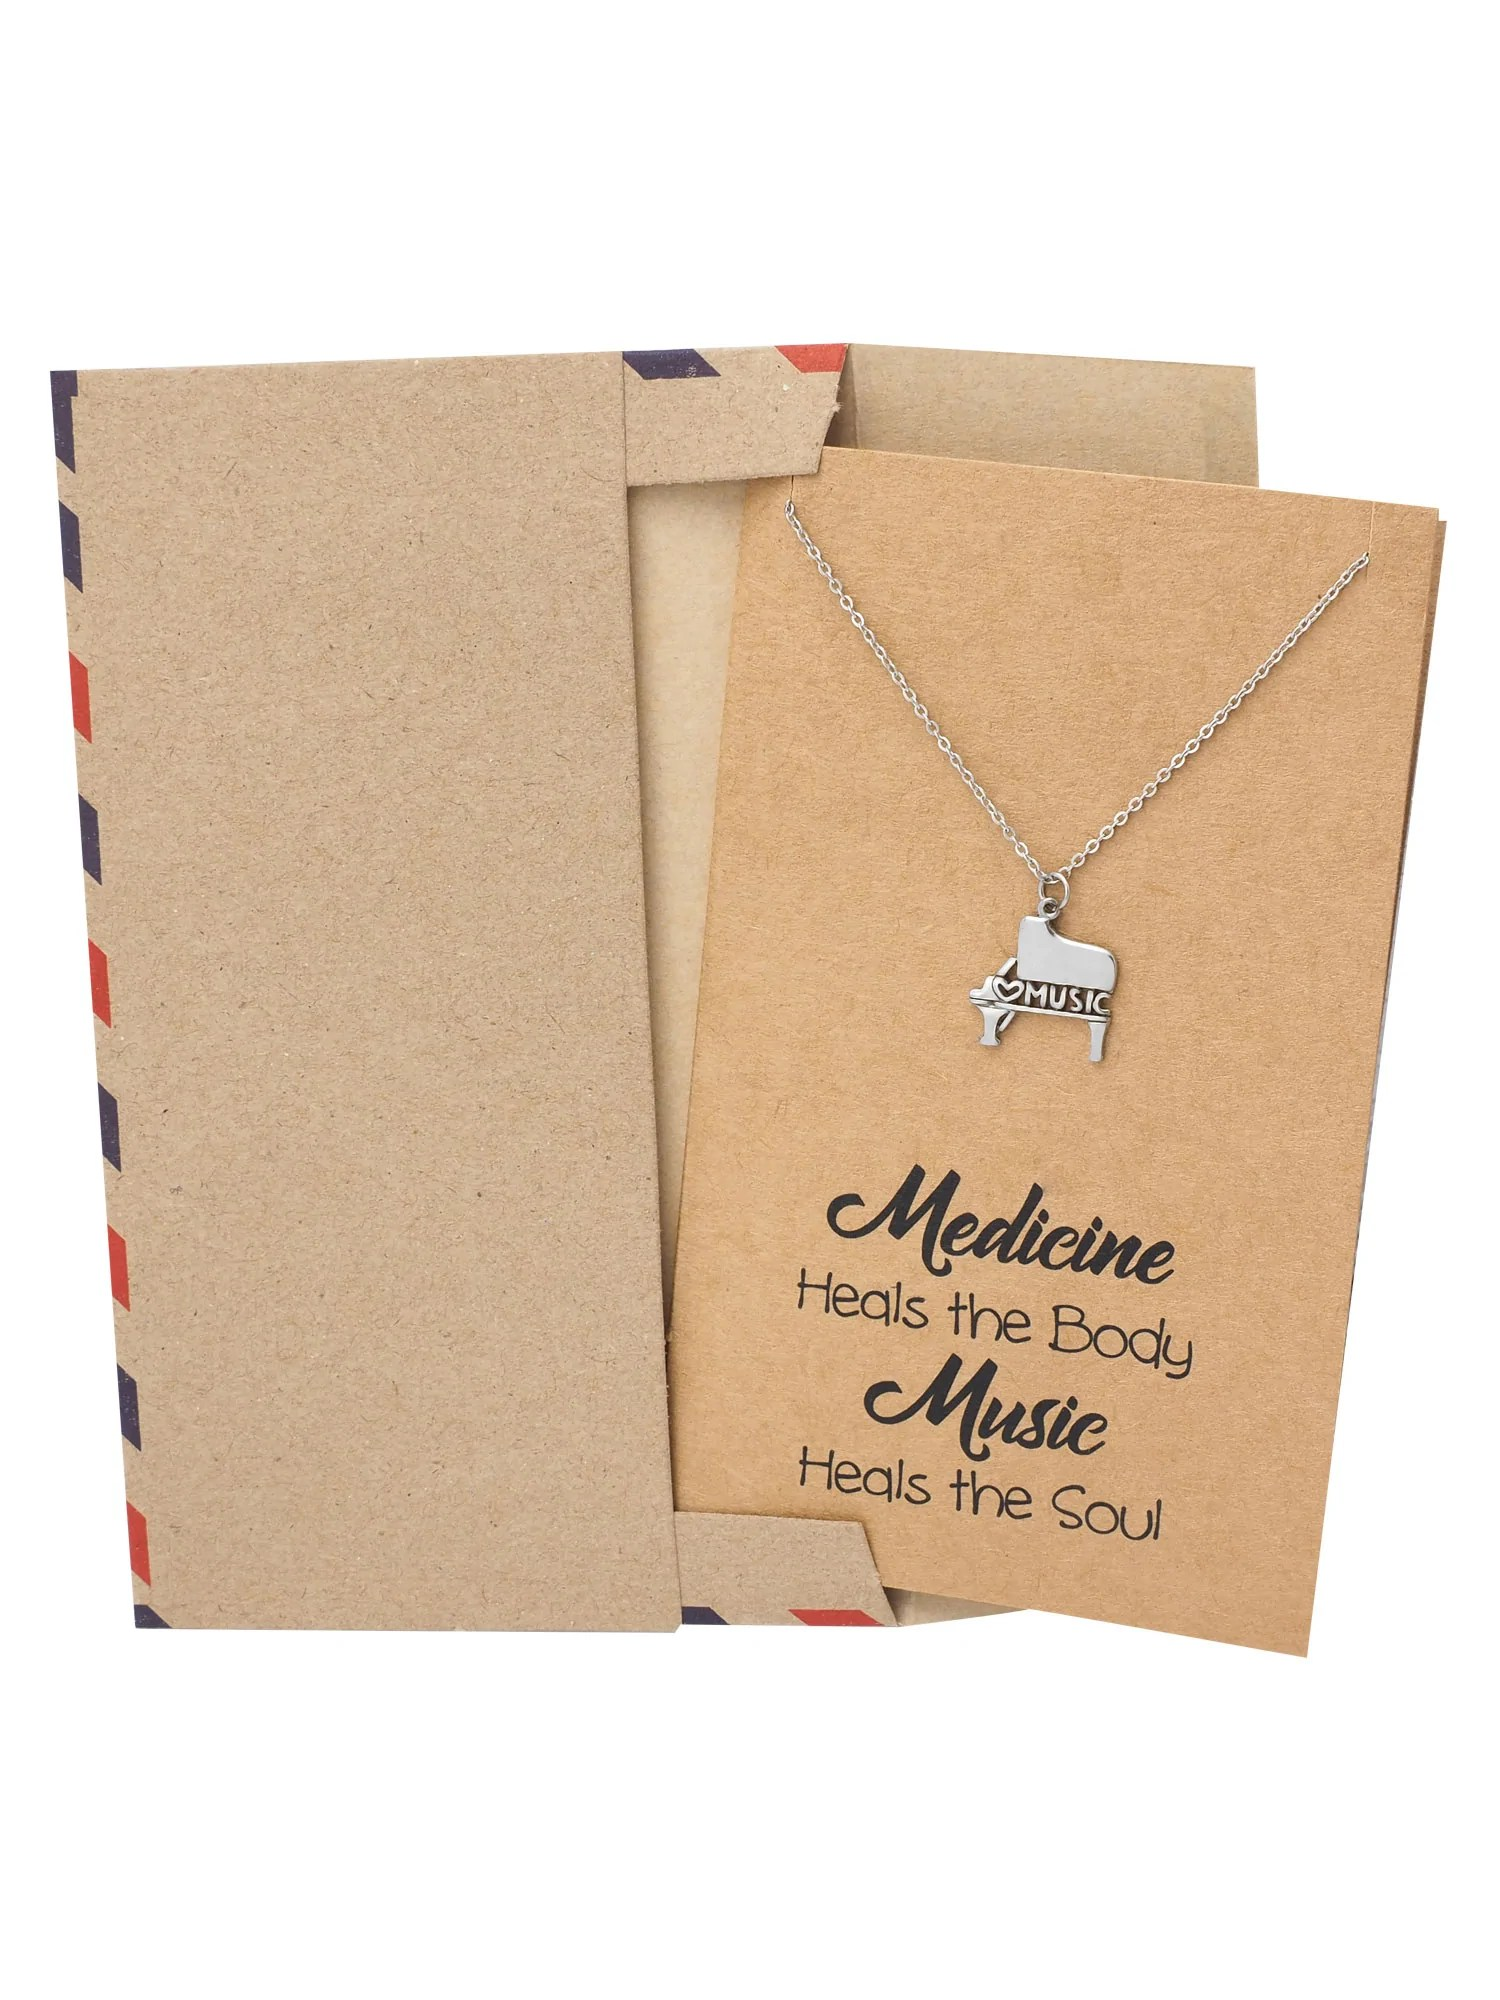 Quinzel Birthday Gifts Music Necklace Gifts For Music